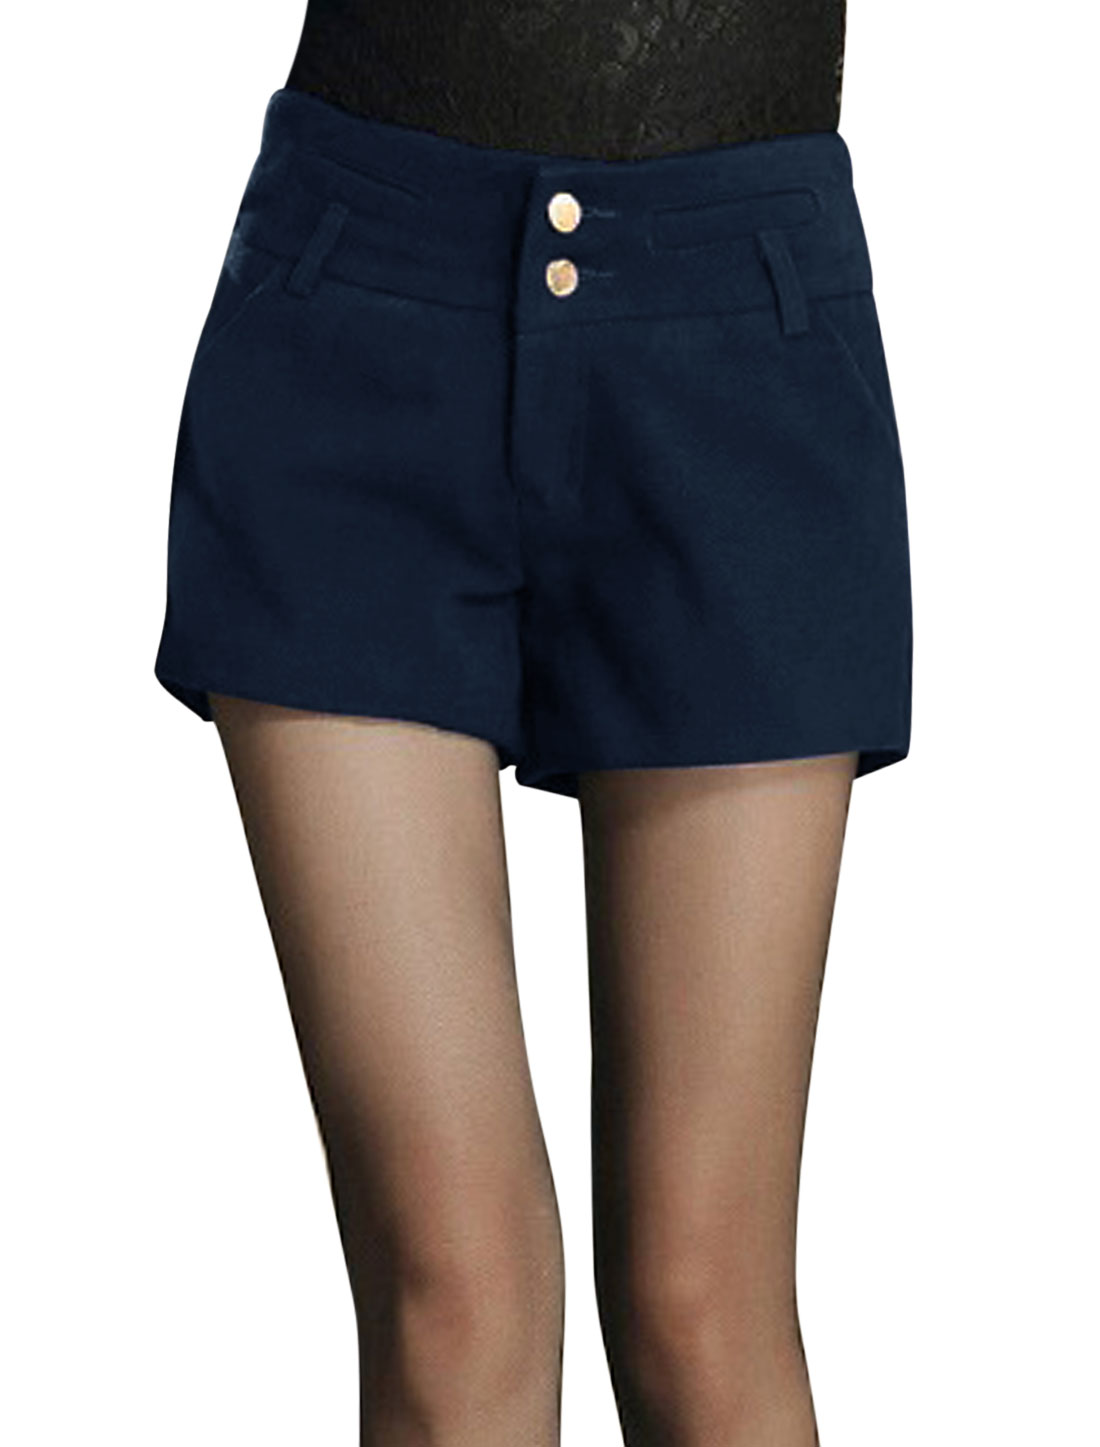 Women Pockets Decor Back Zip Closure Worsted Shorts Navy Blue L